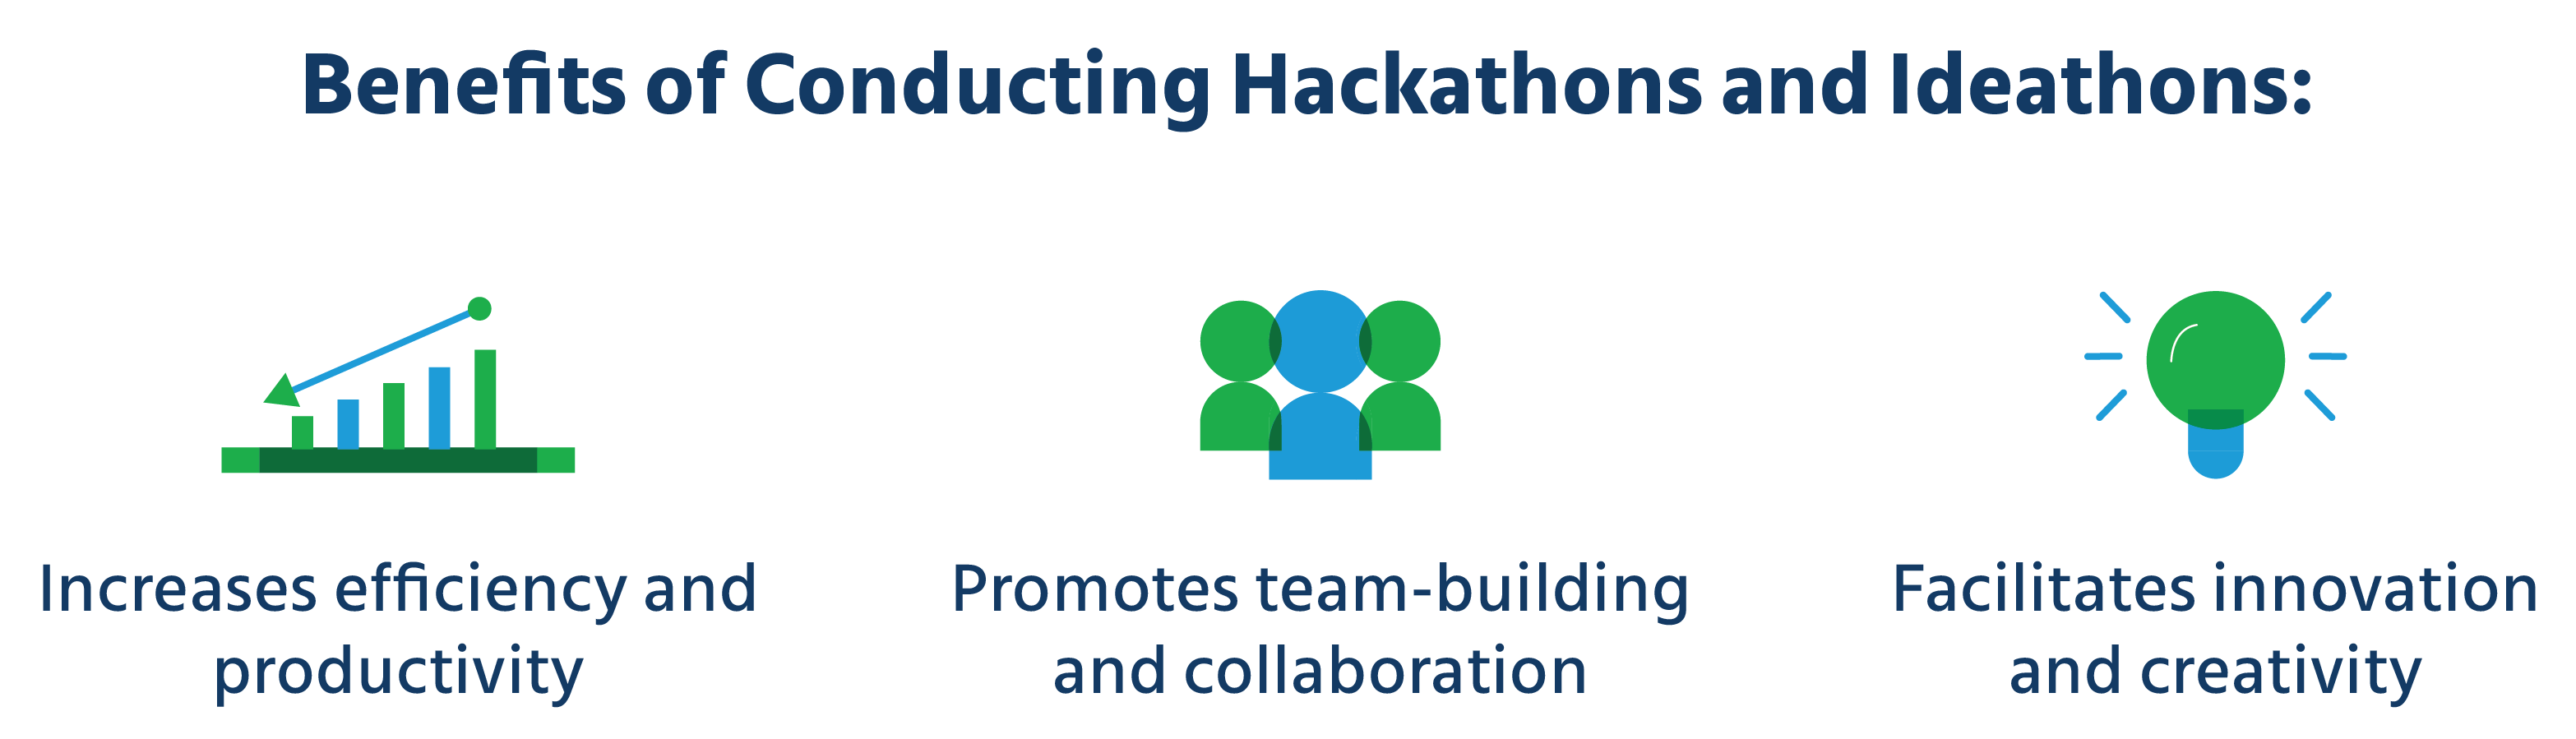 Benefits_of_Conducting_Hackathons_and_Ideathons_online_employee_certification_software